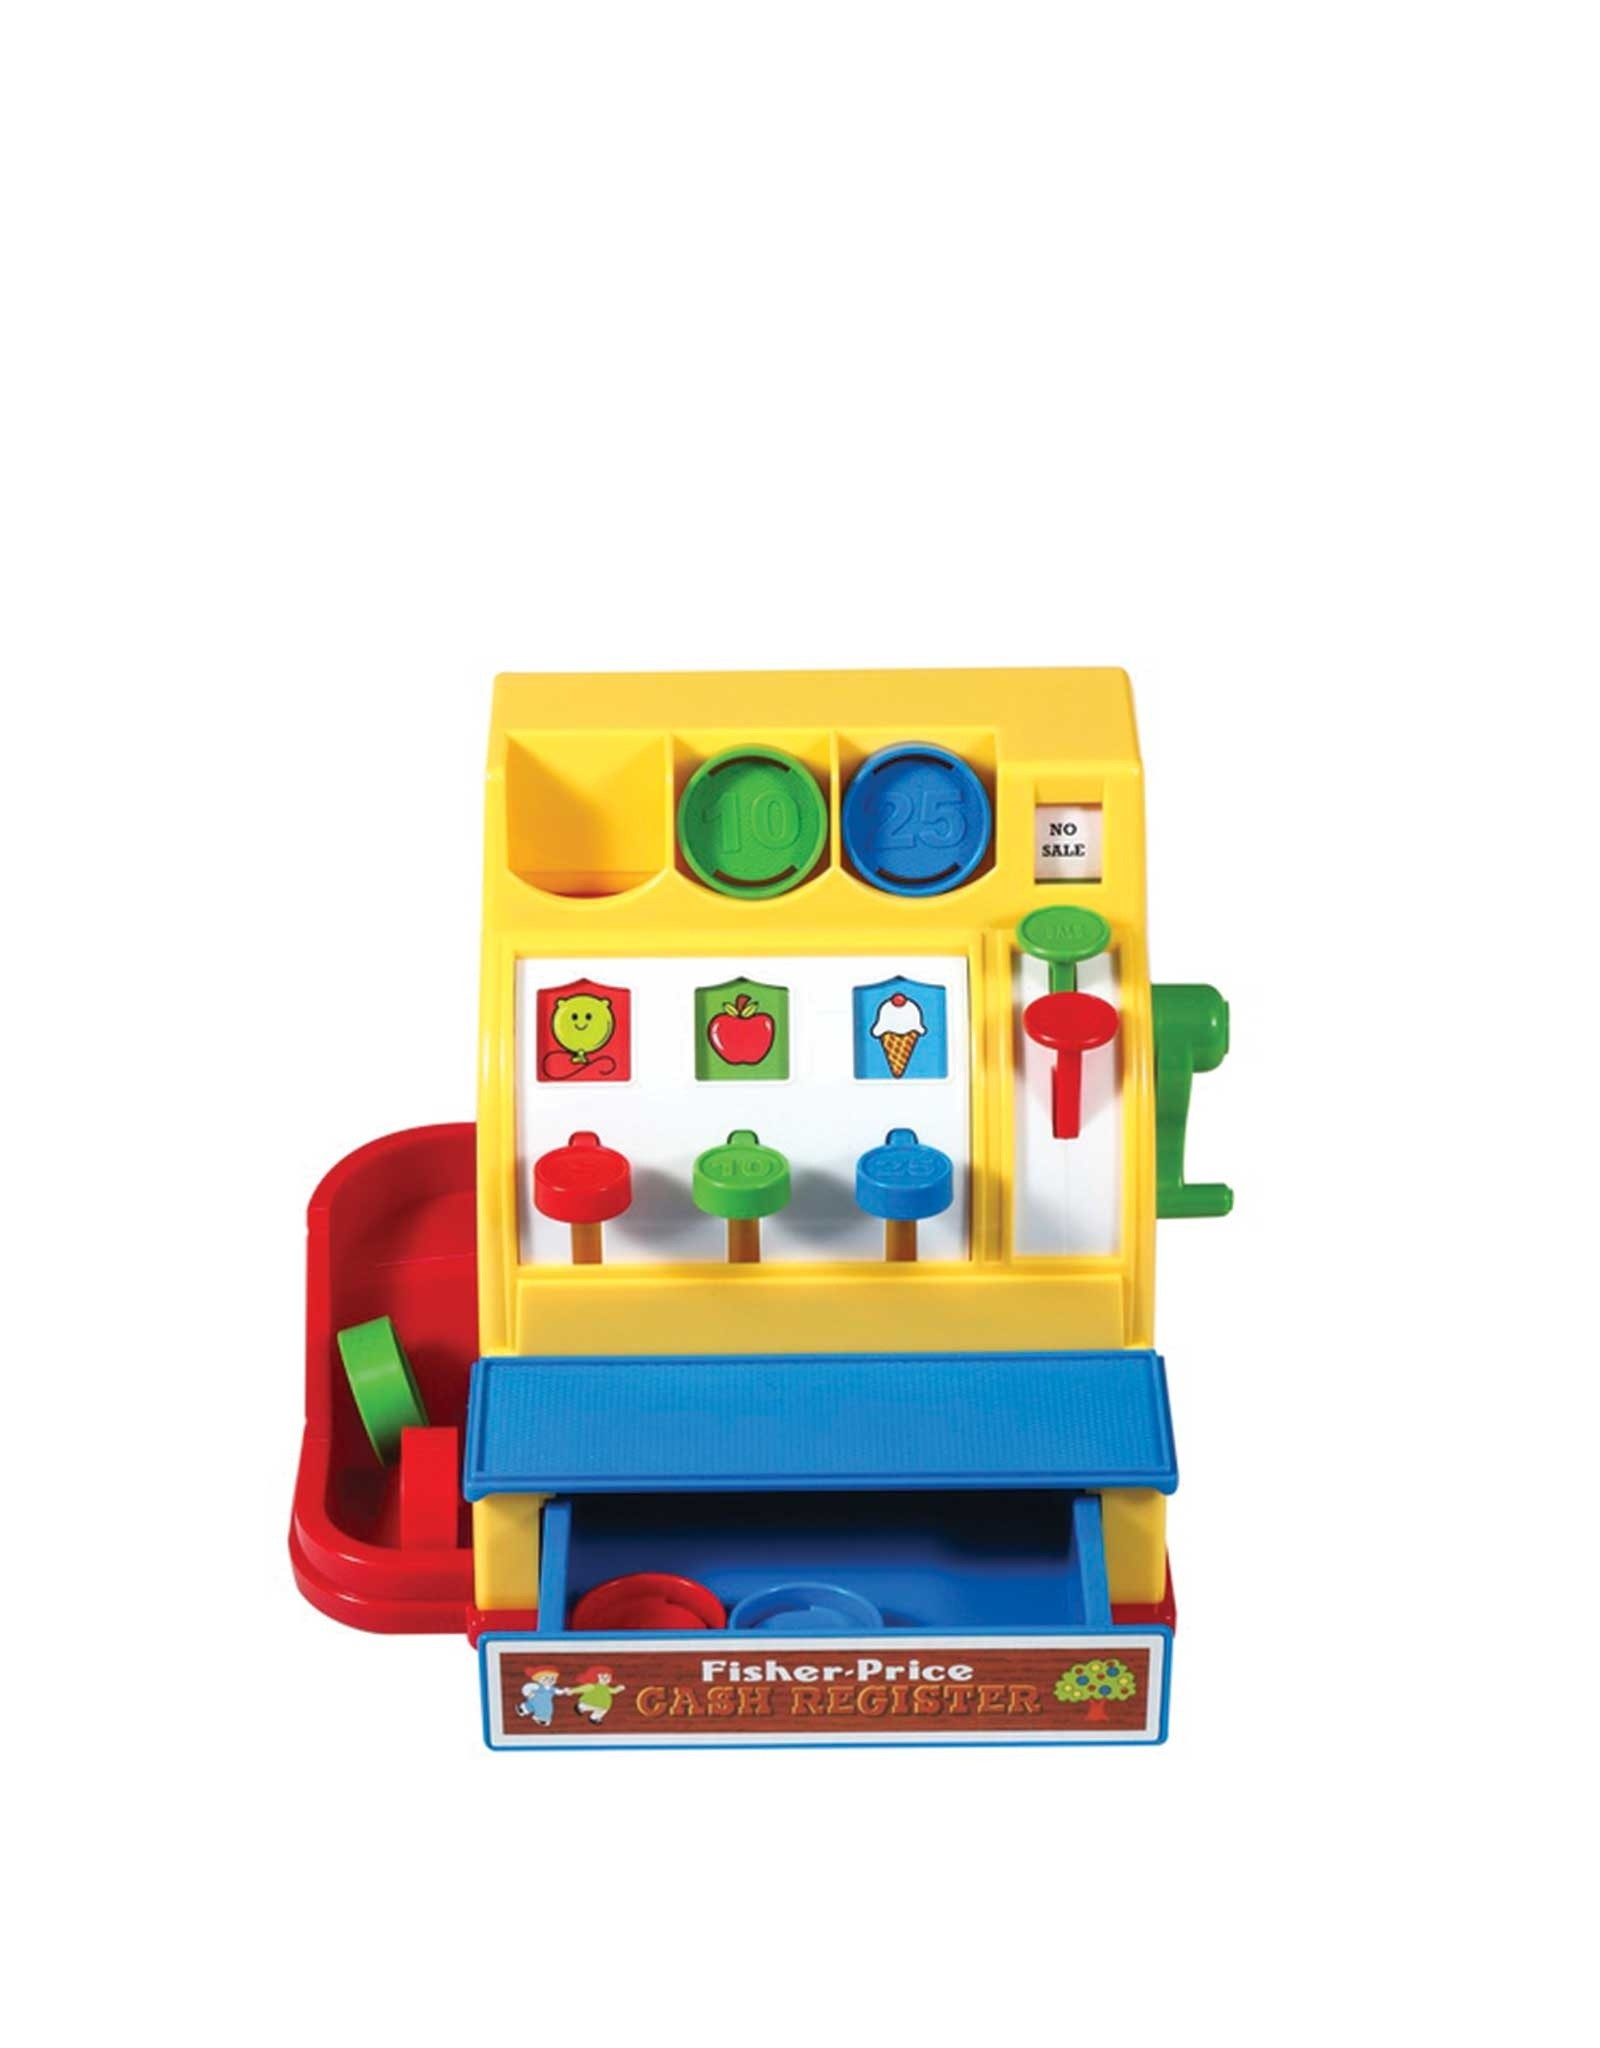 Fisher Price Vintage Fisher Price Classic Cash Register